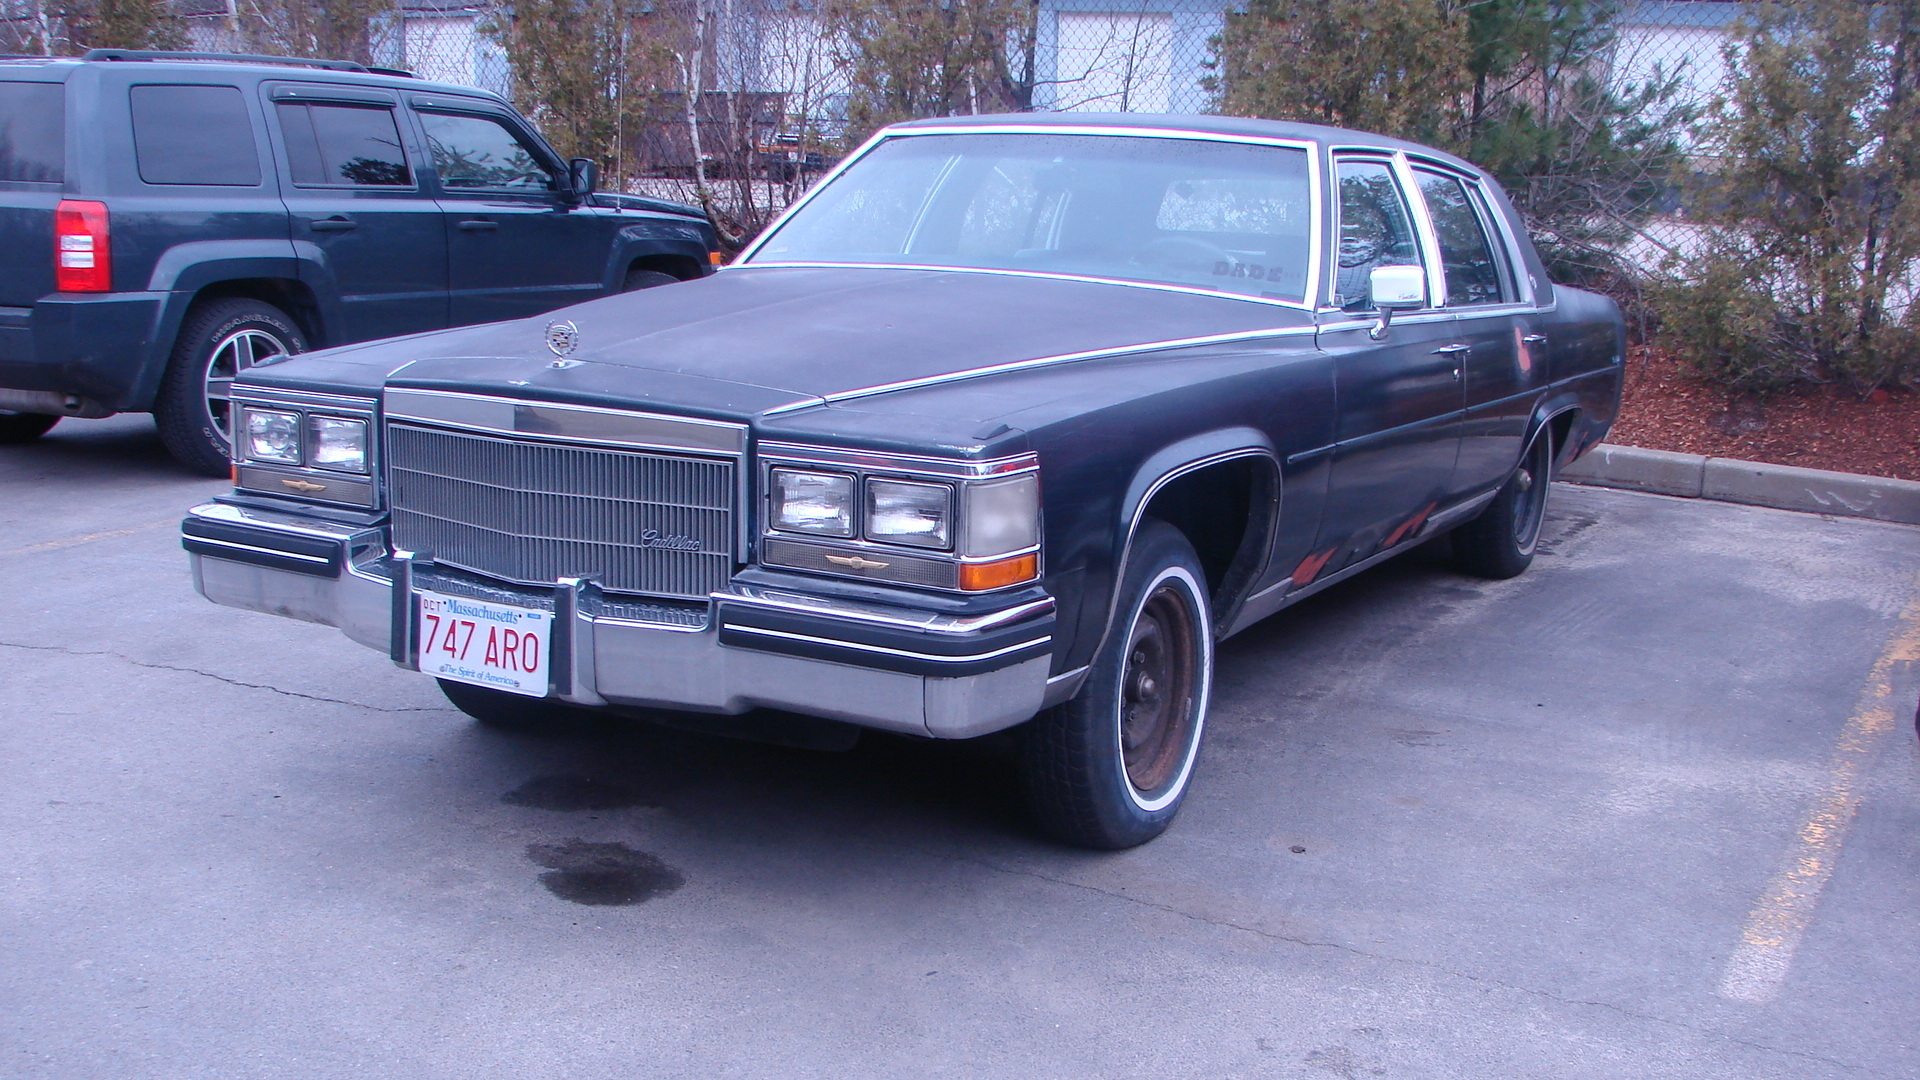 Donk_King 1985 Cadillac Fleetwood 9165972